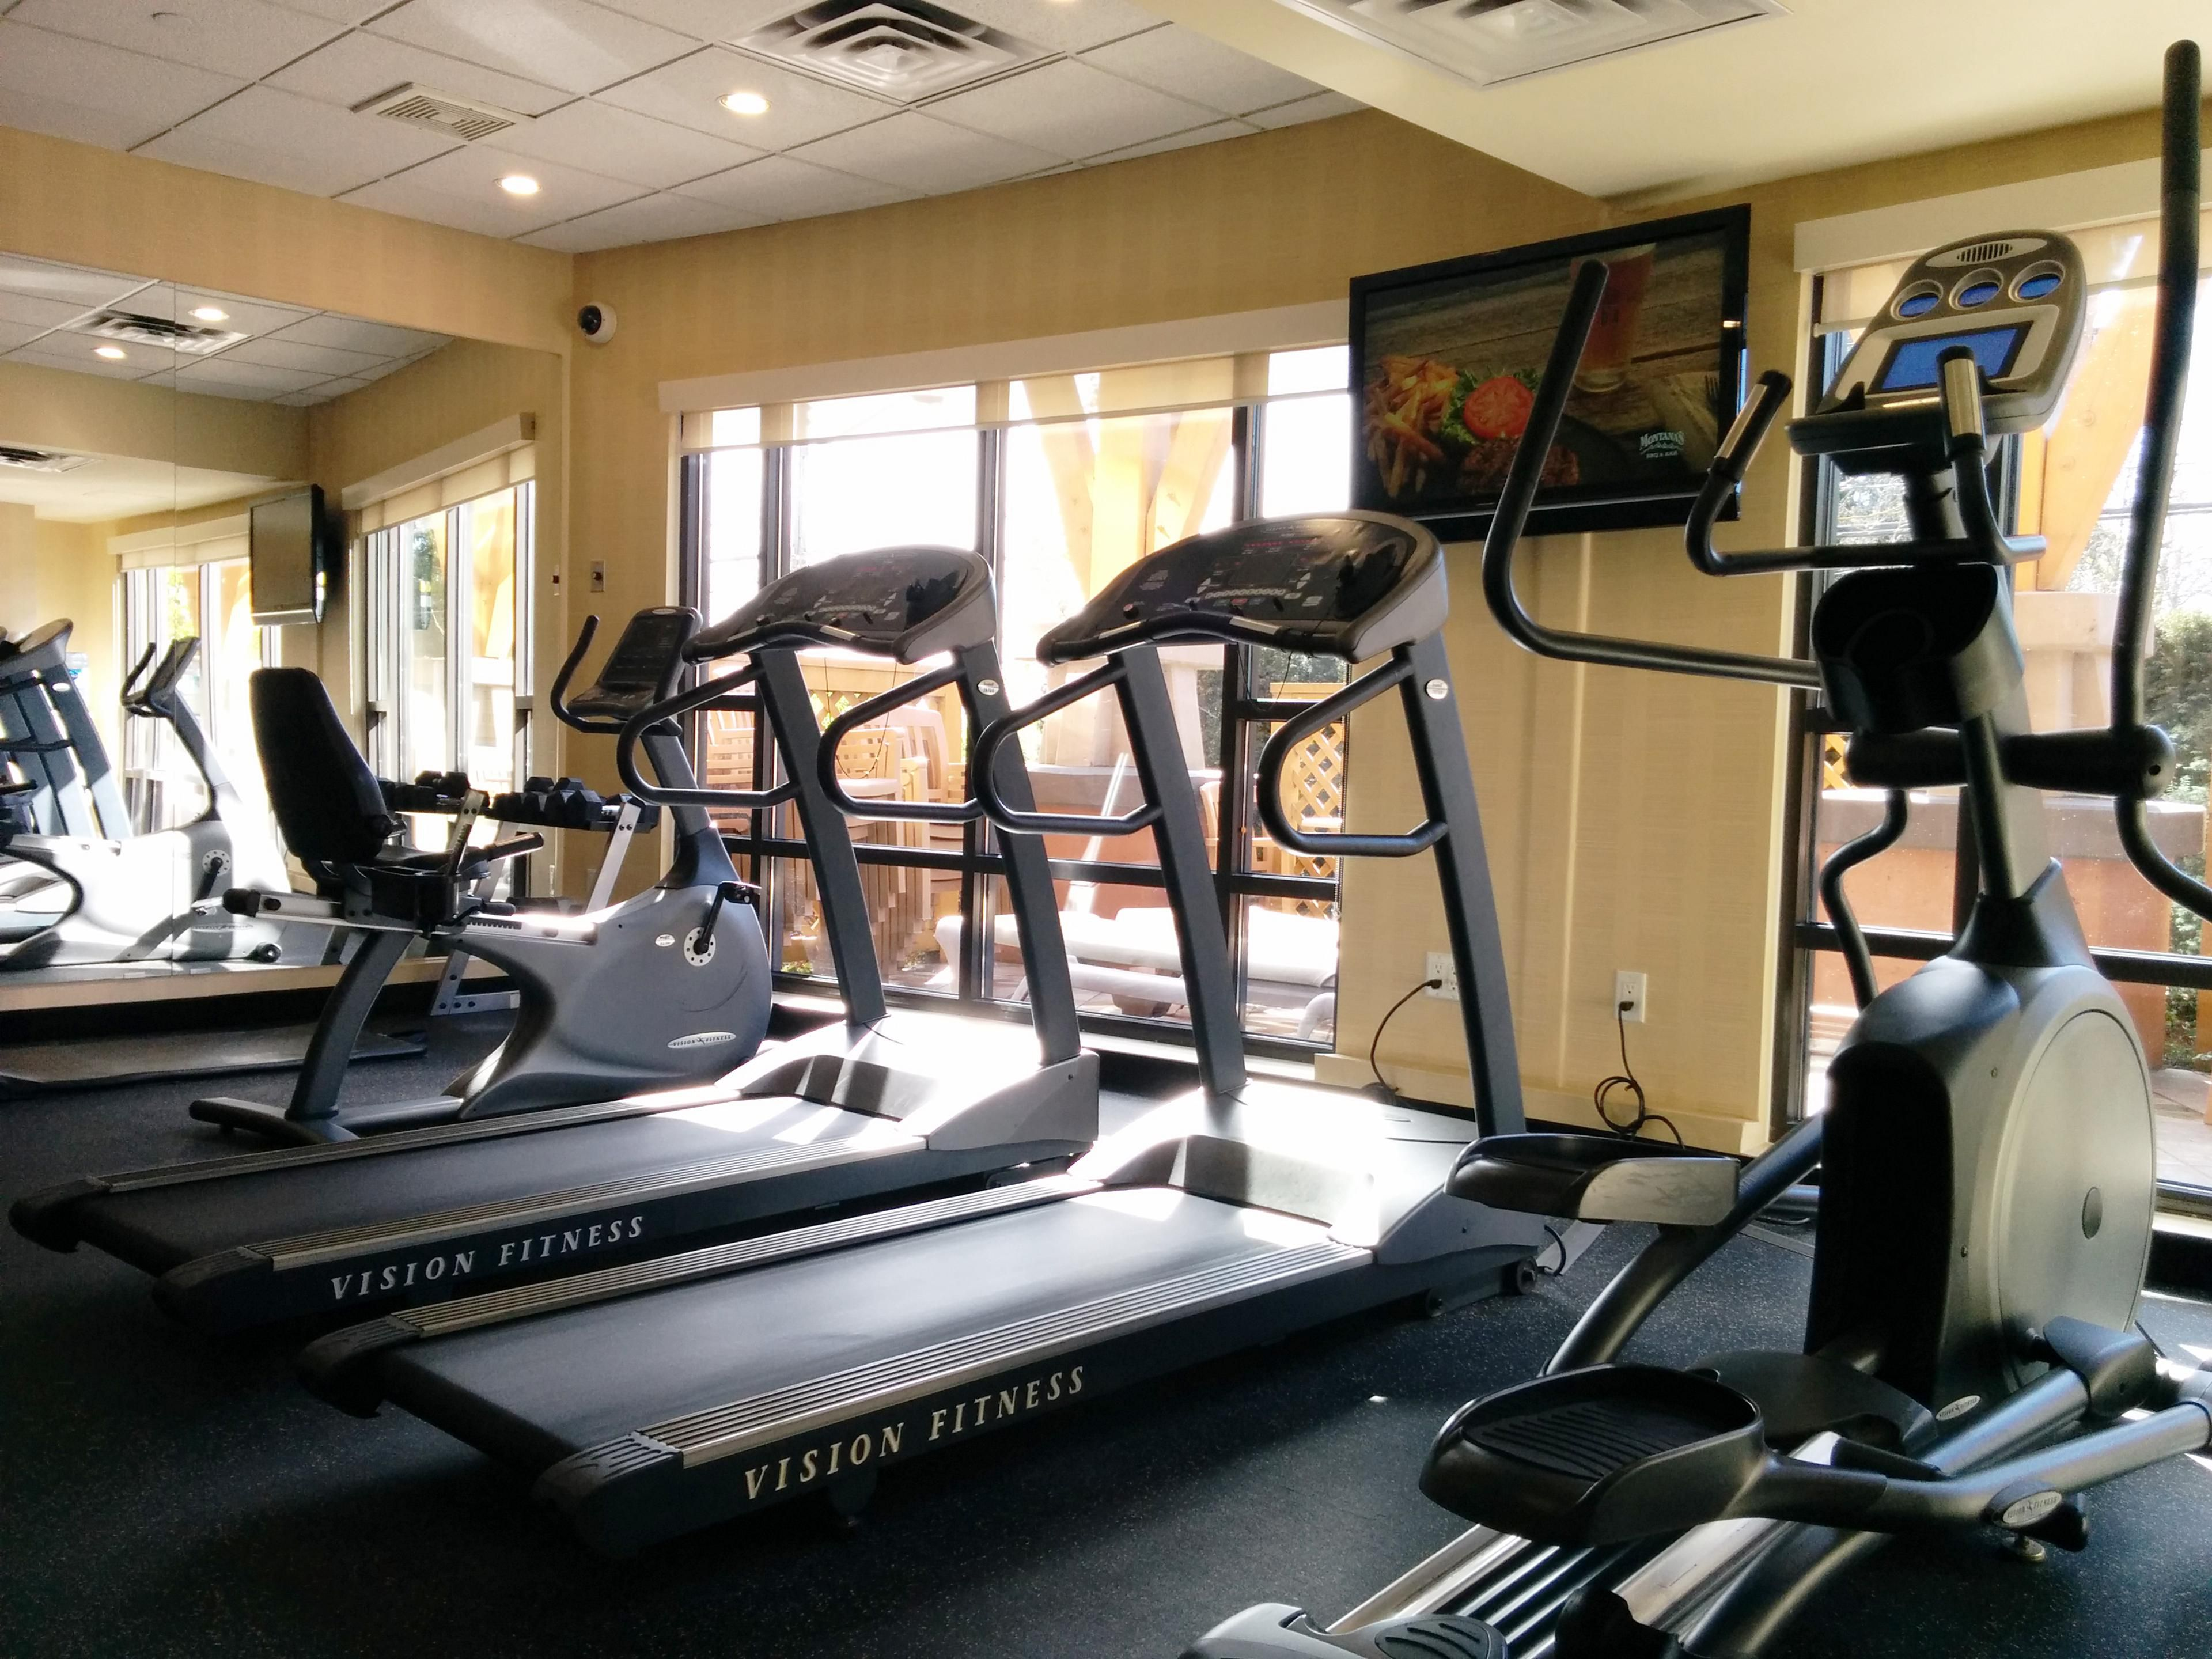 Fitness Center Complete With Treadmills, Ellipticals, & Weights.